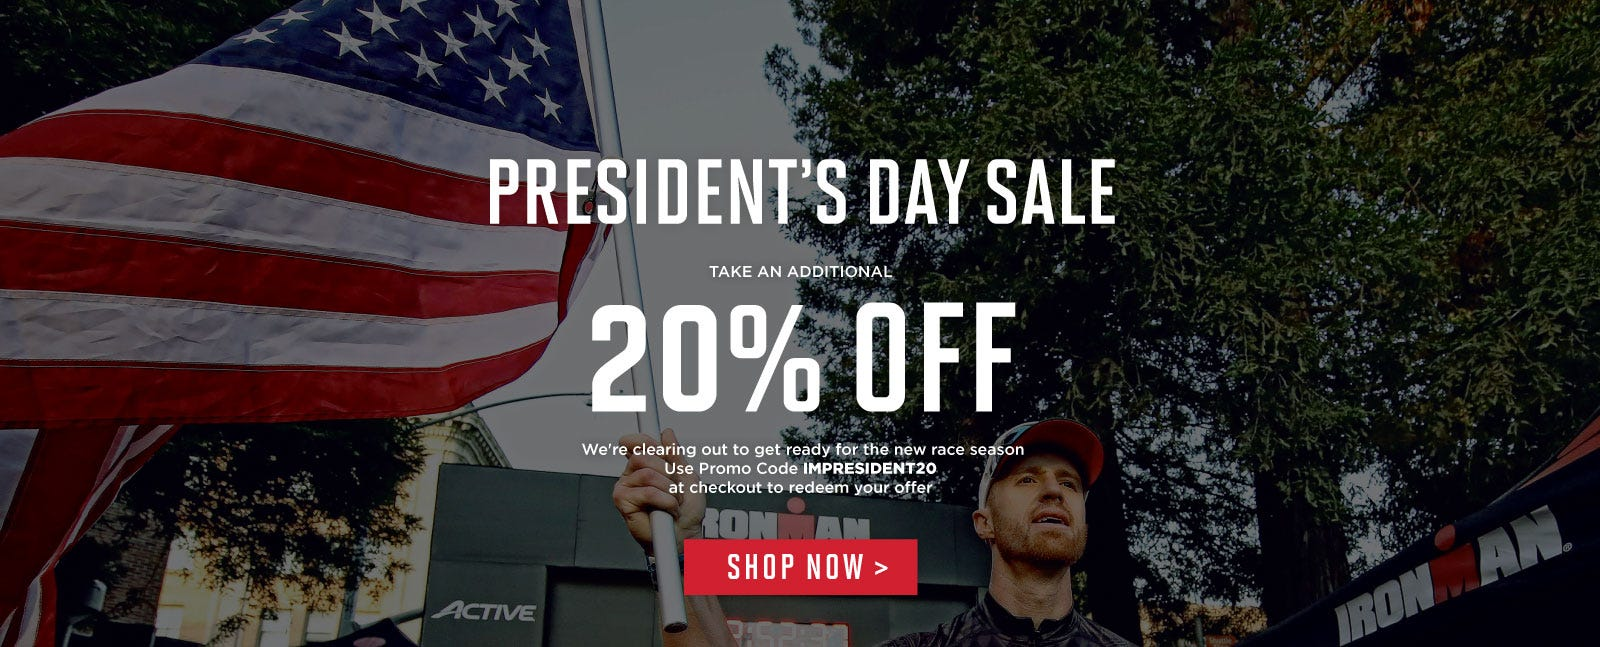 IRONMAN President's Day Sale - Take an Additional 20% off